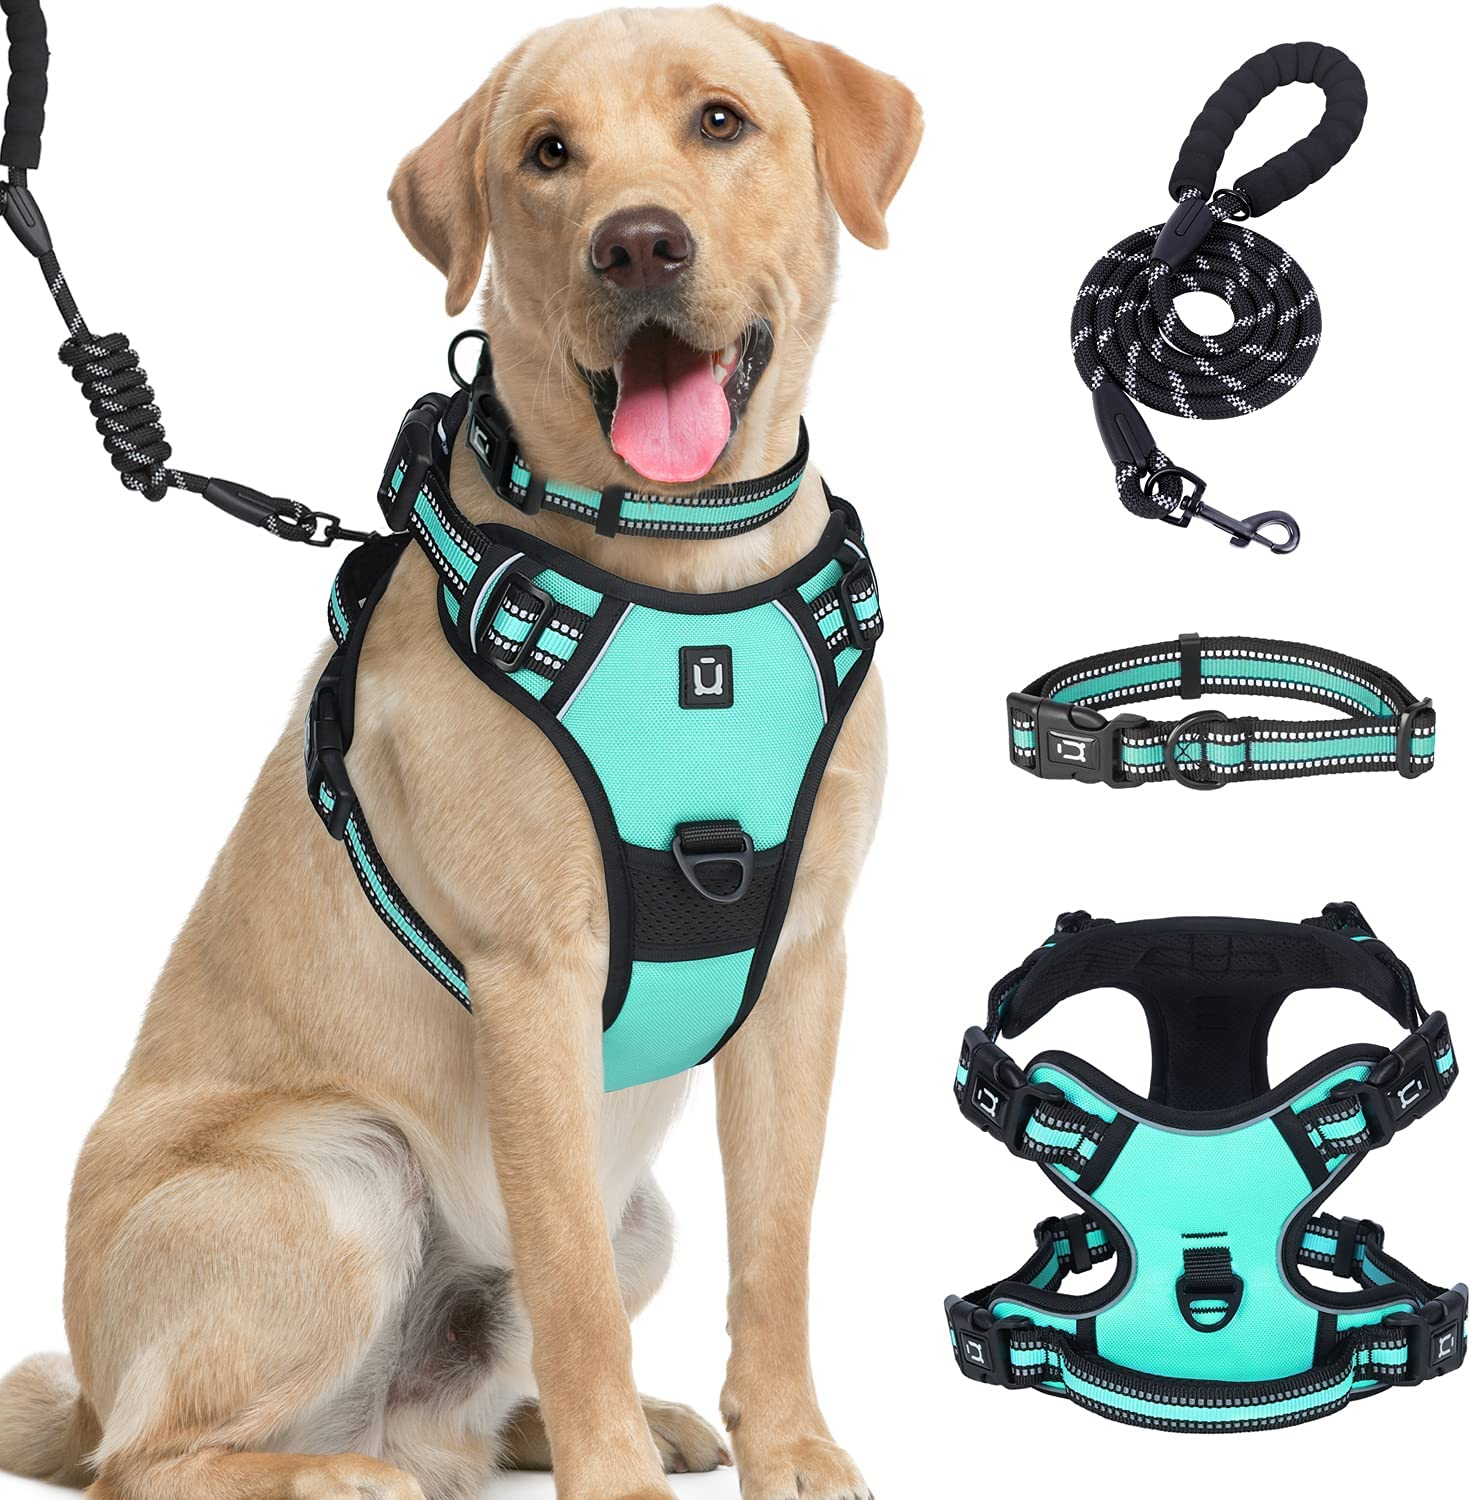 Dog Same day shipping Harness Miami Mall for Small Dogs 4 Buck Waldseemuller Camo